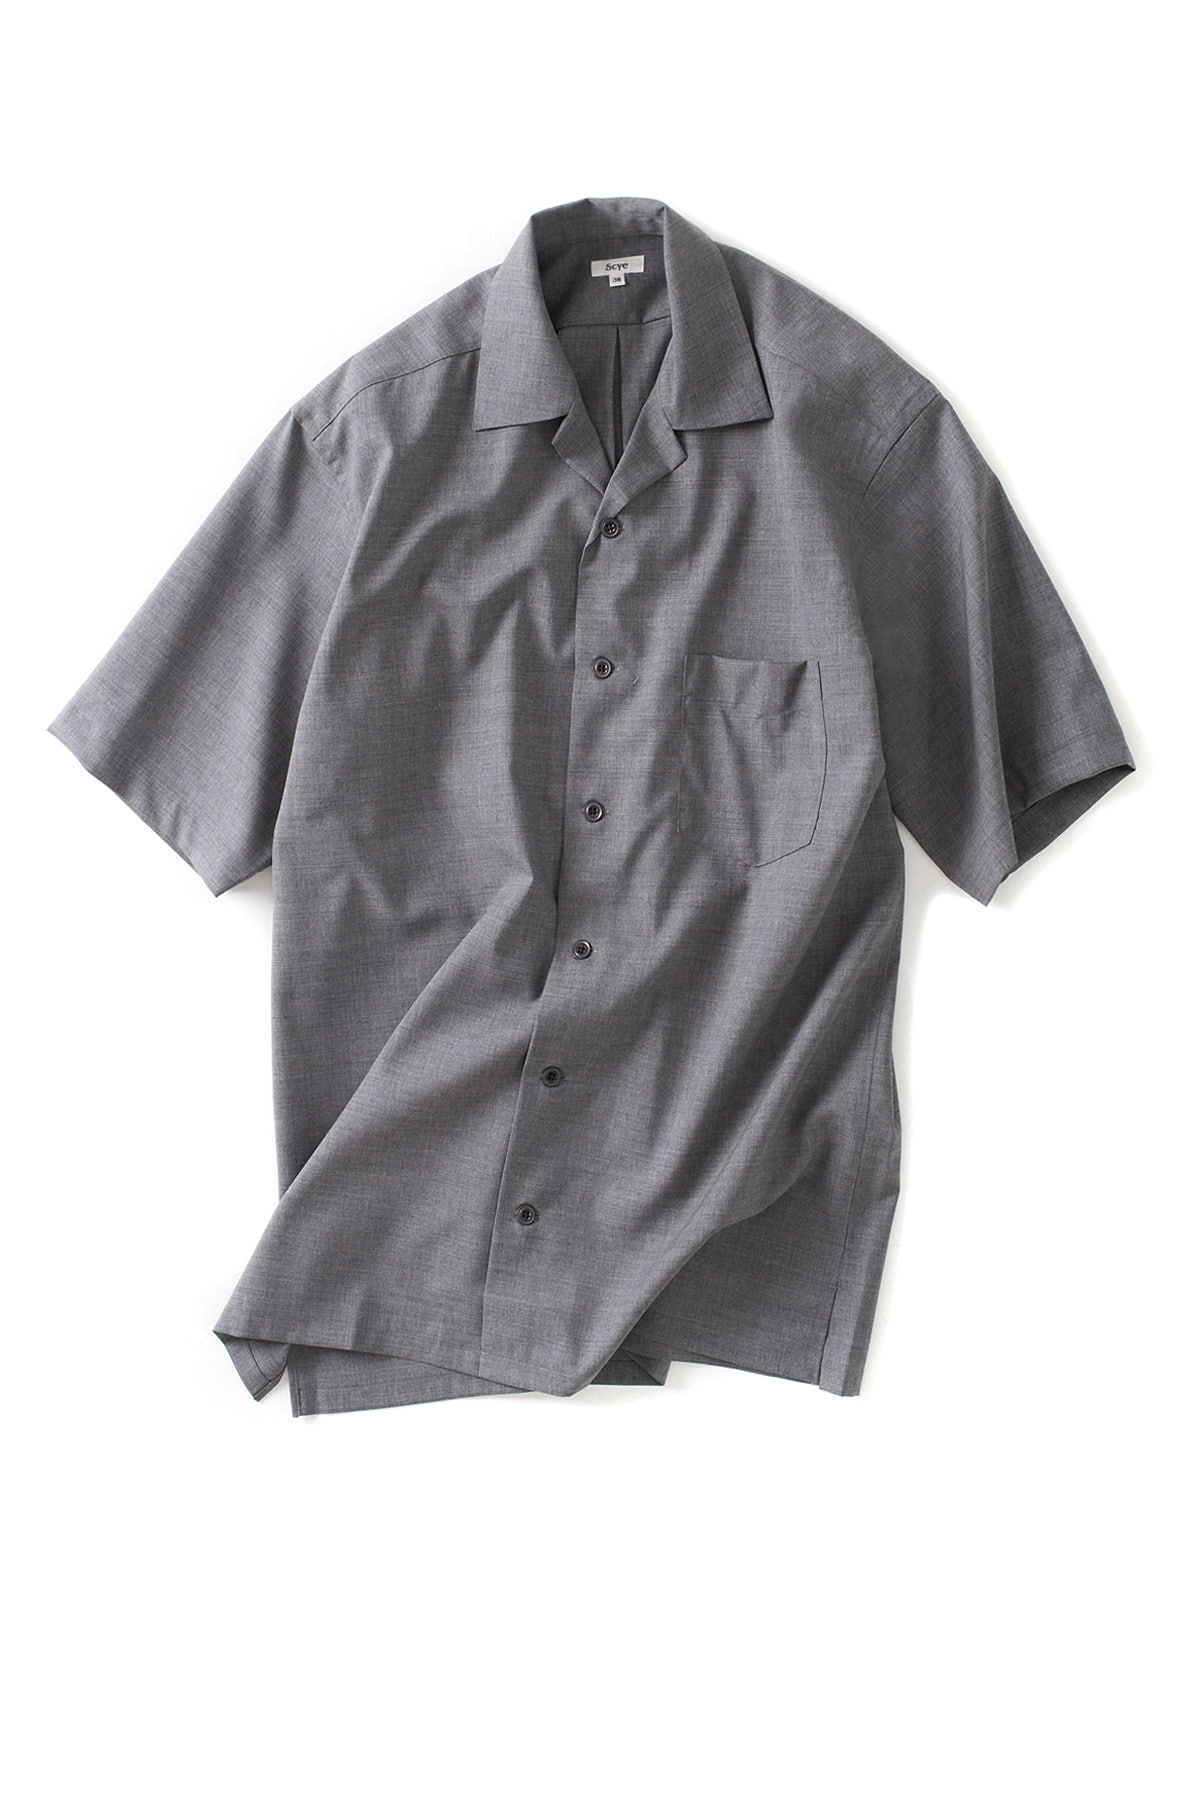 Scye : Wool Camp Collar Shirt (Grey)